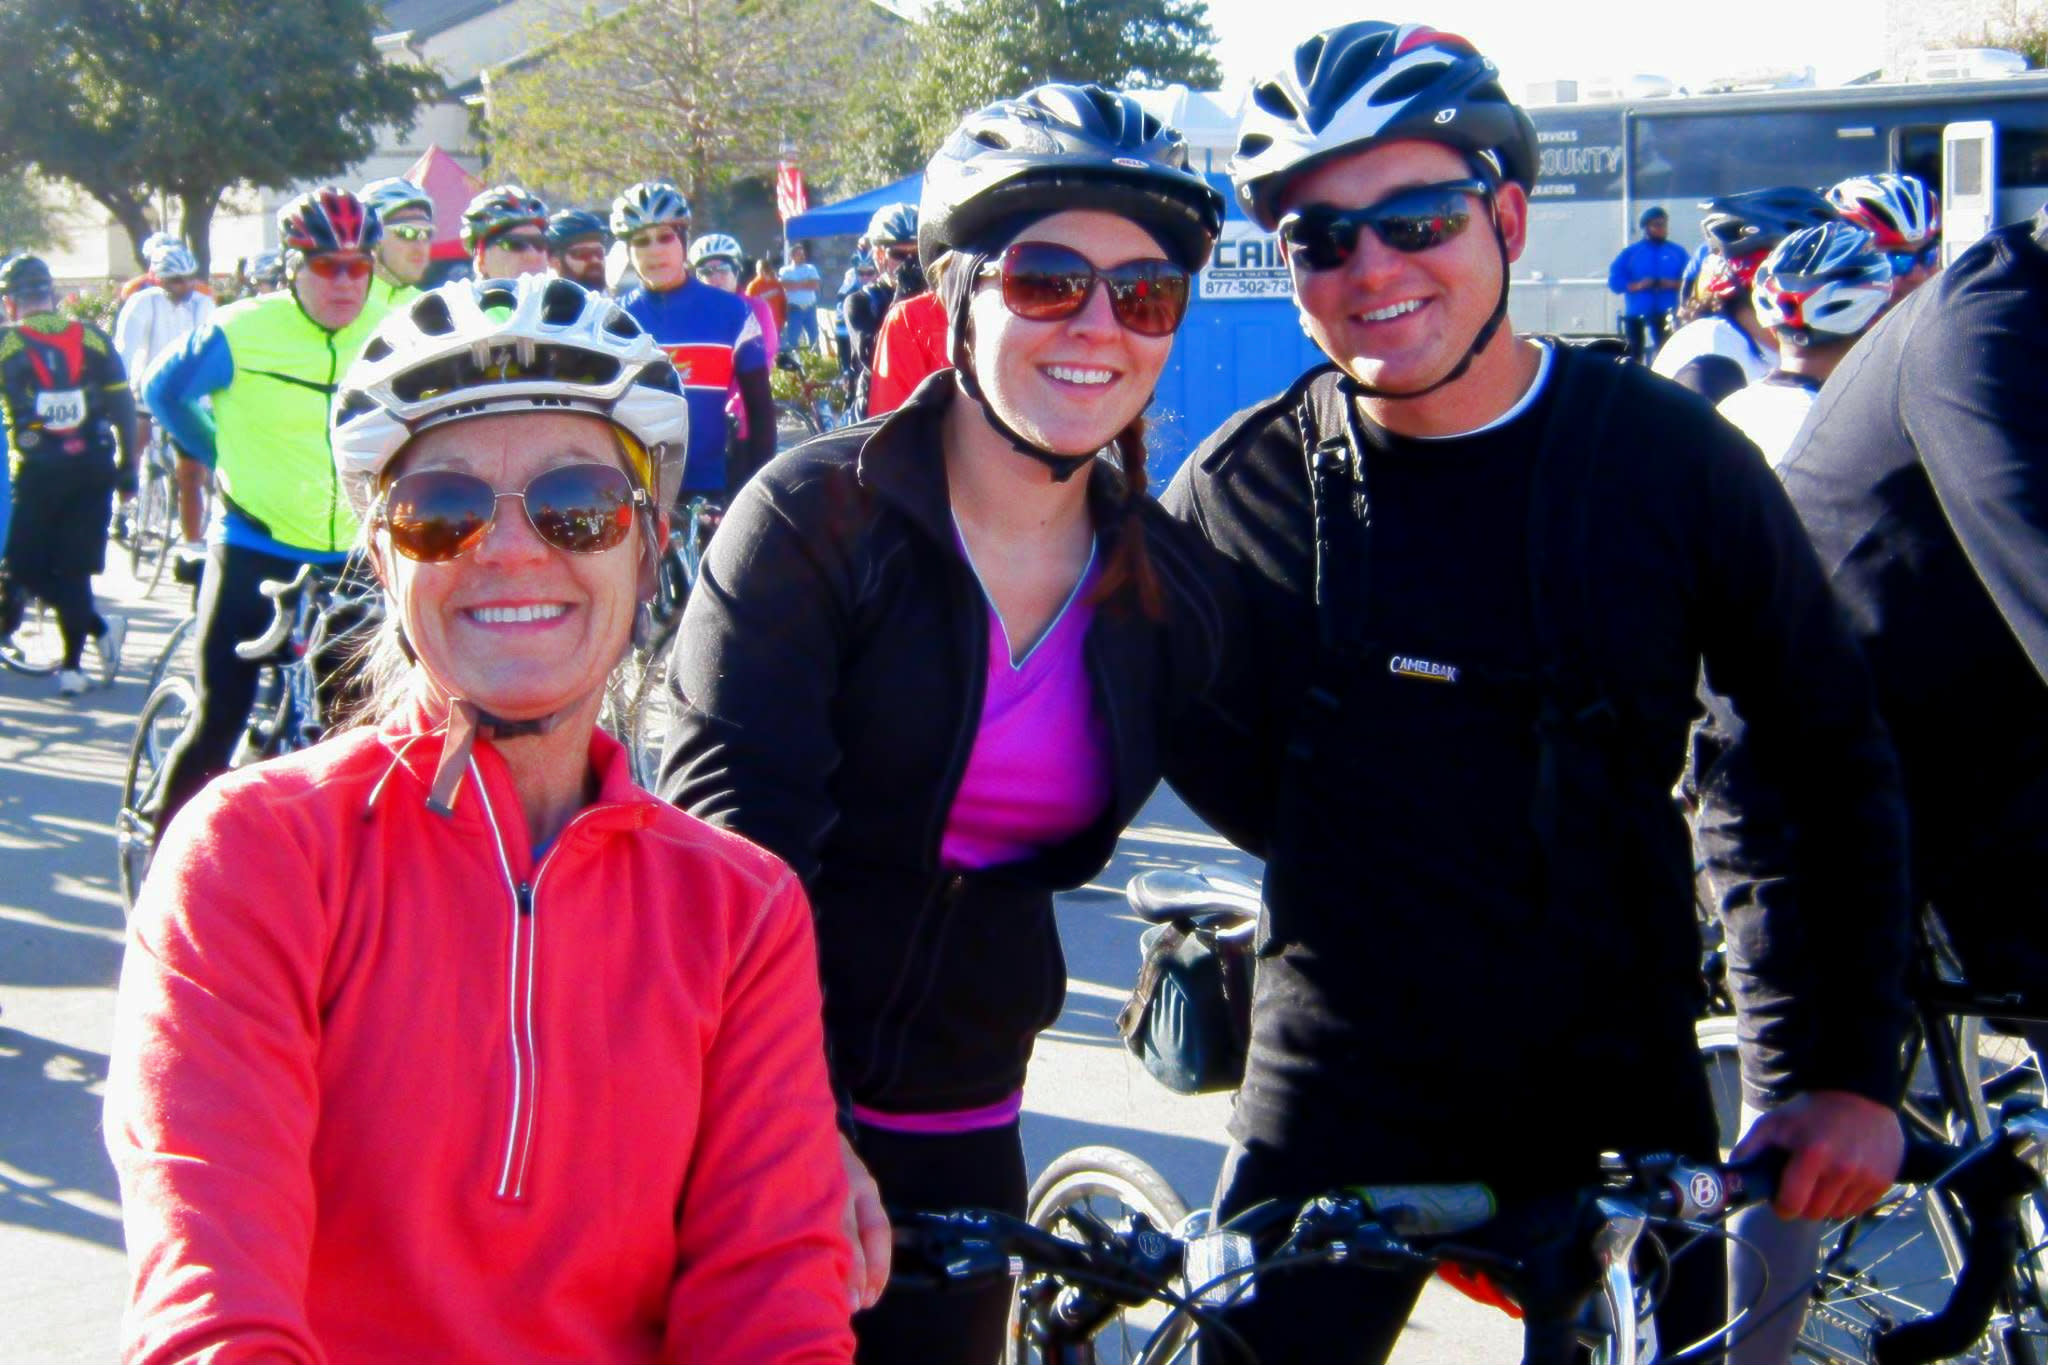 Over 20 years participating!! This group makes the Turkey Roll Bicycle Rally a family affair.